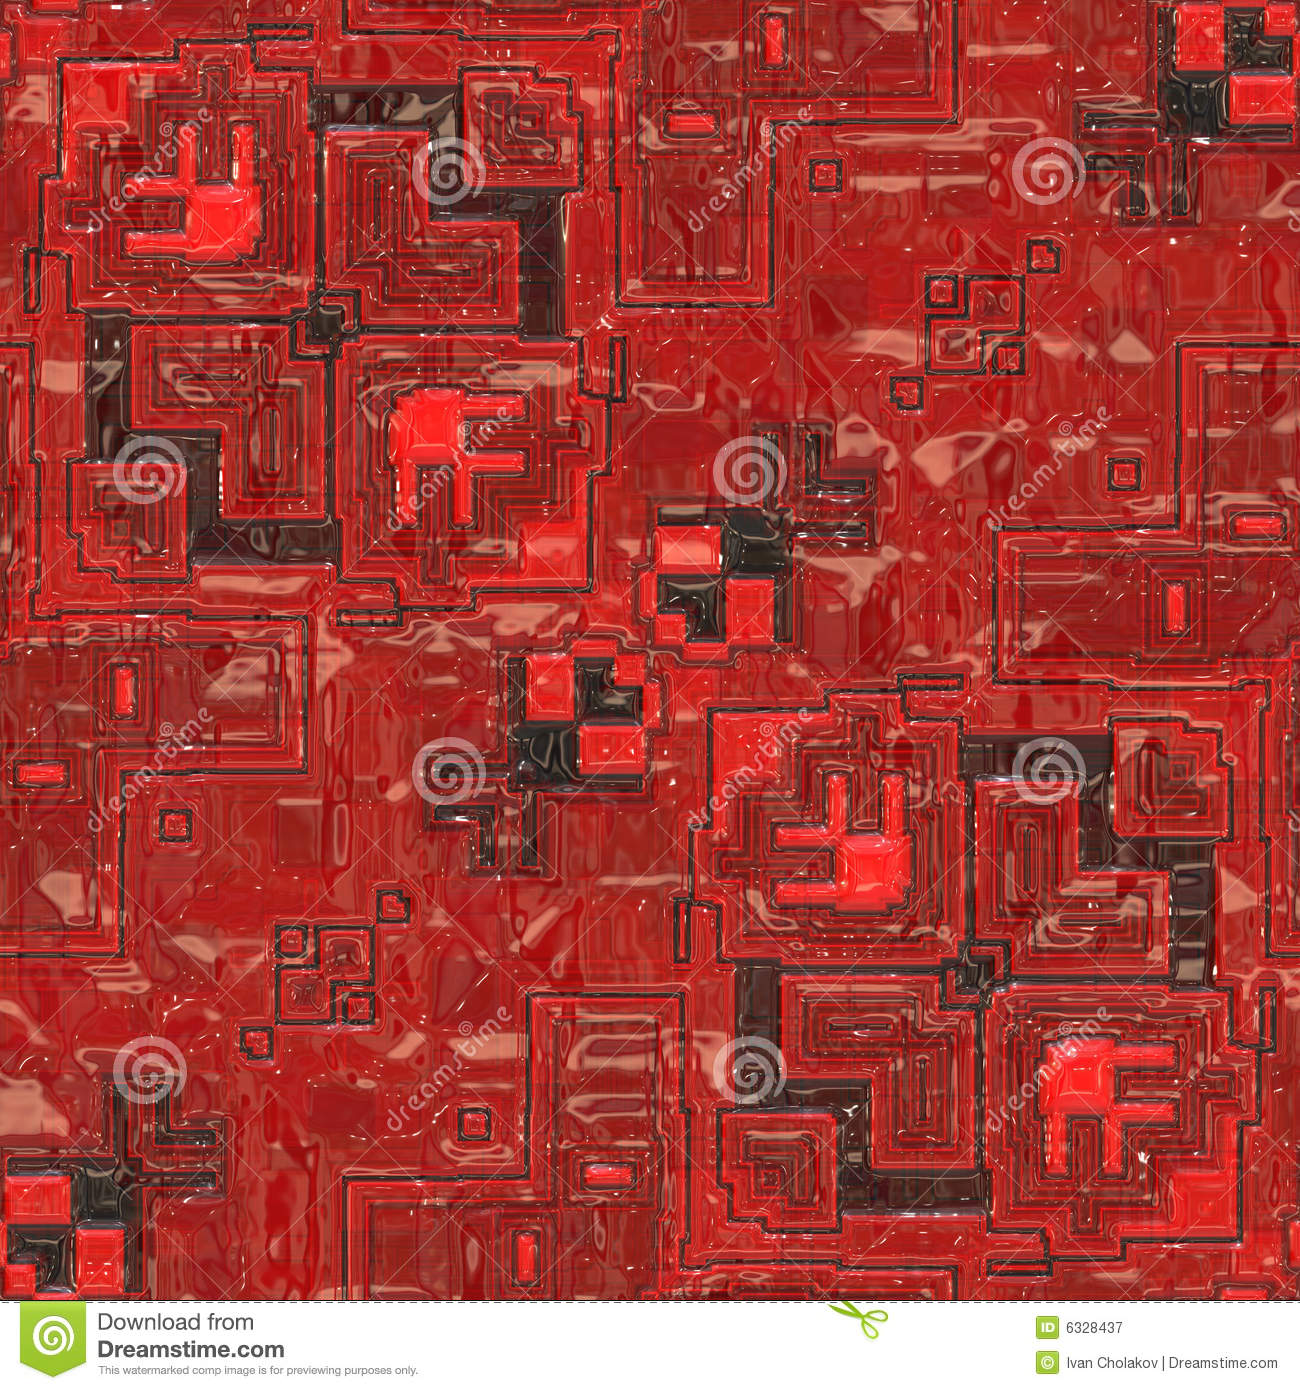 Royalty Free Image Of Background From Red Circuit Board Close Up